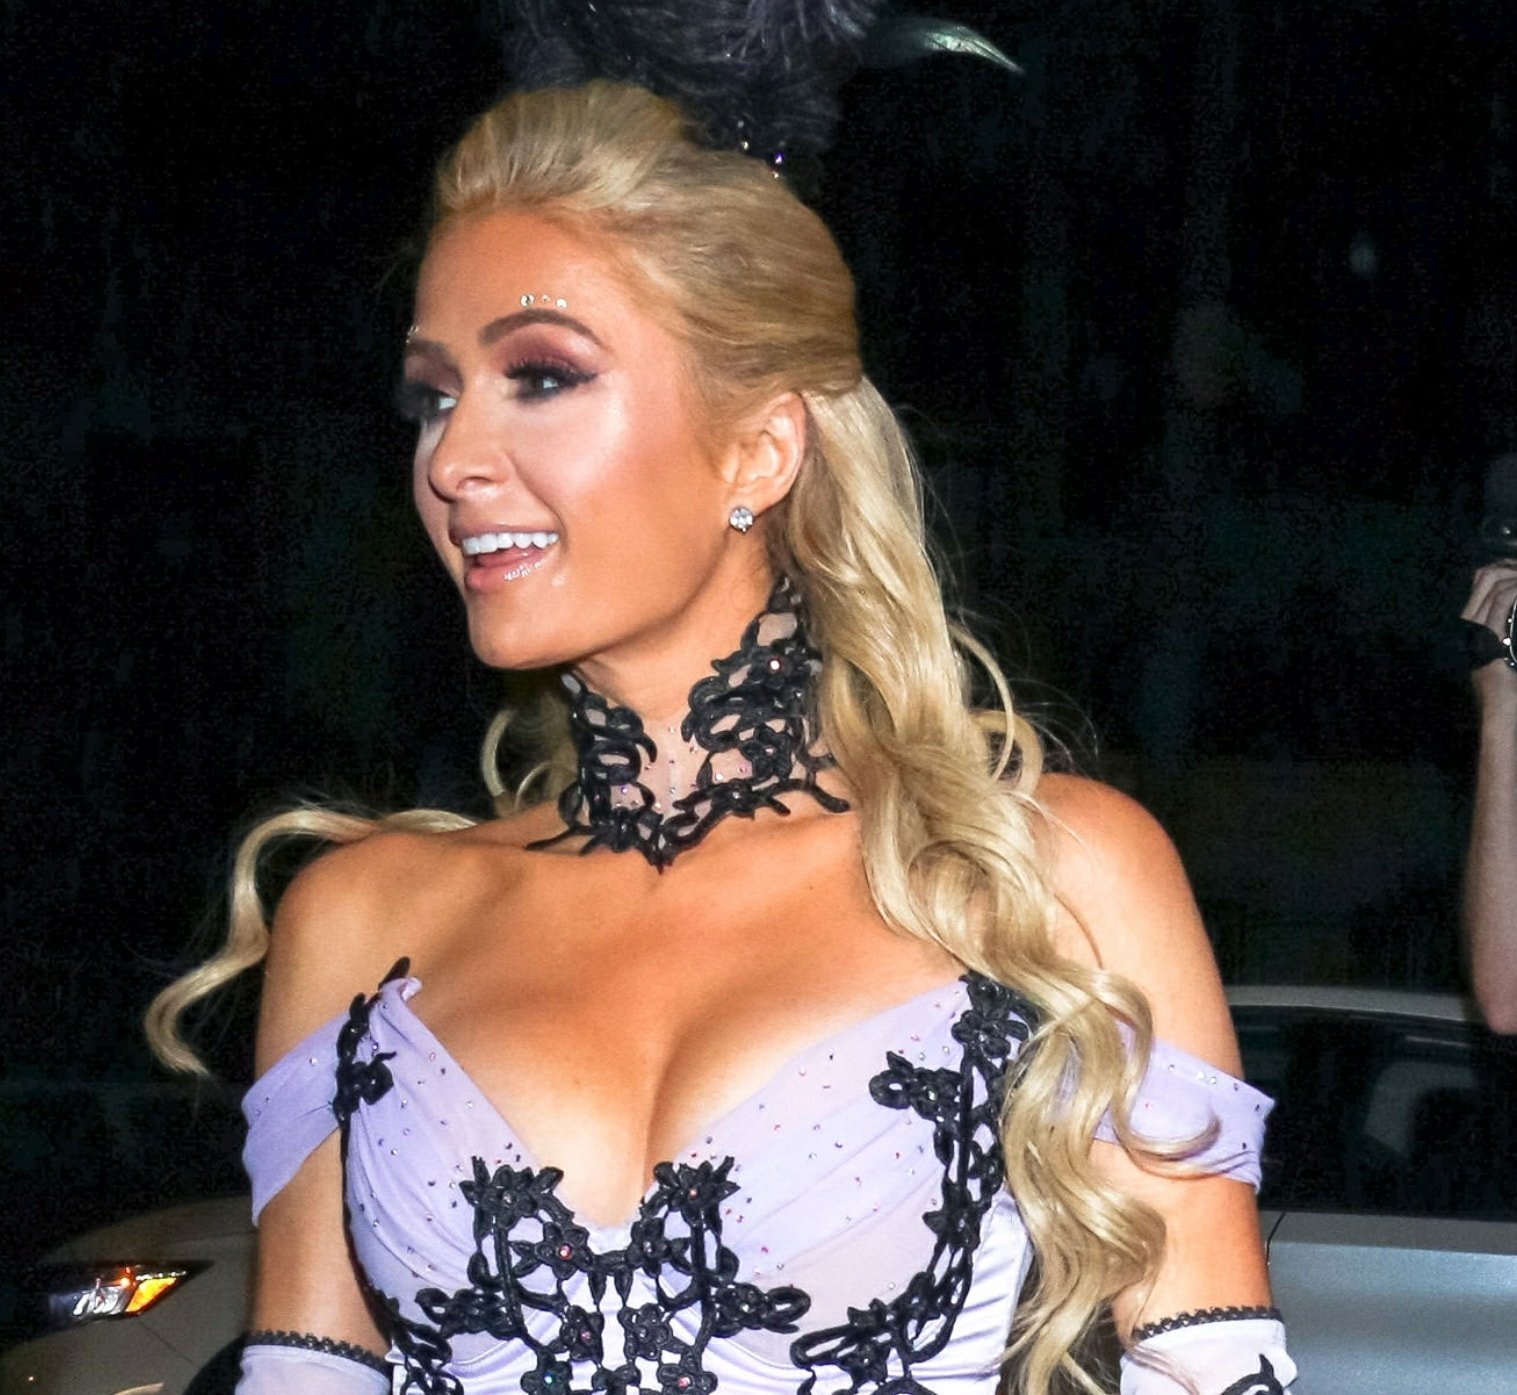 Paris Hilton claims the secret behind her eye-popping cleavage is a pushup bra from her own lingerie line